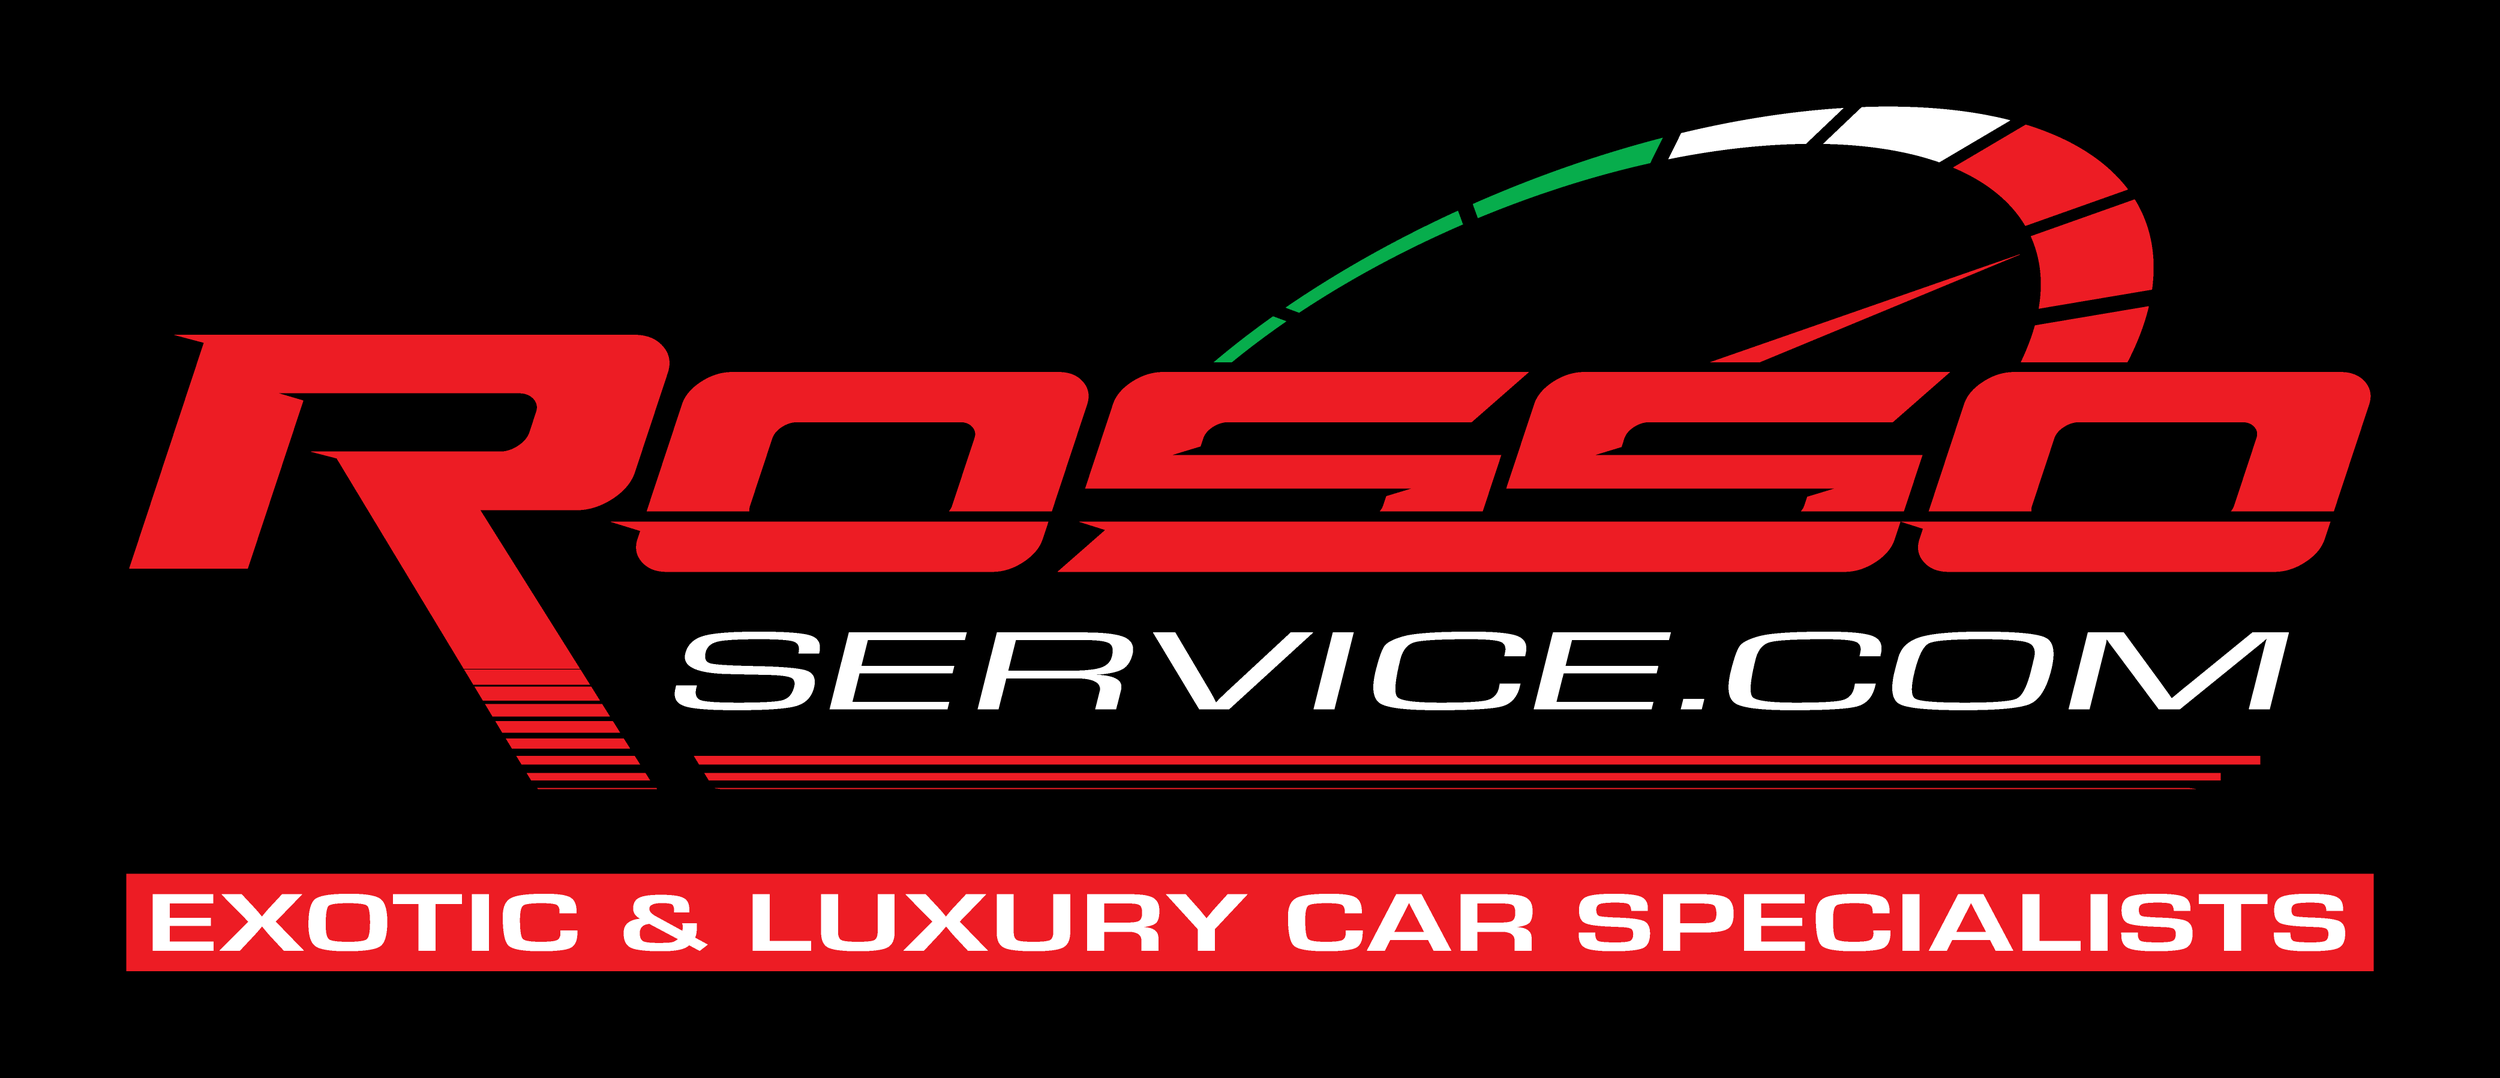 Click the logo for more information on Rosso Service!